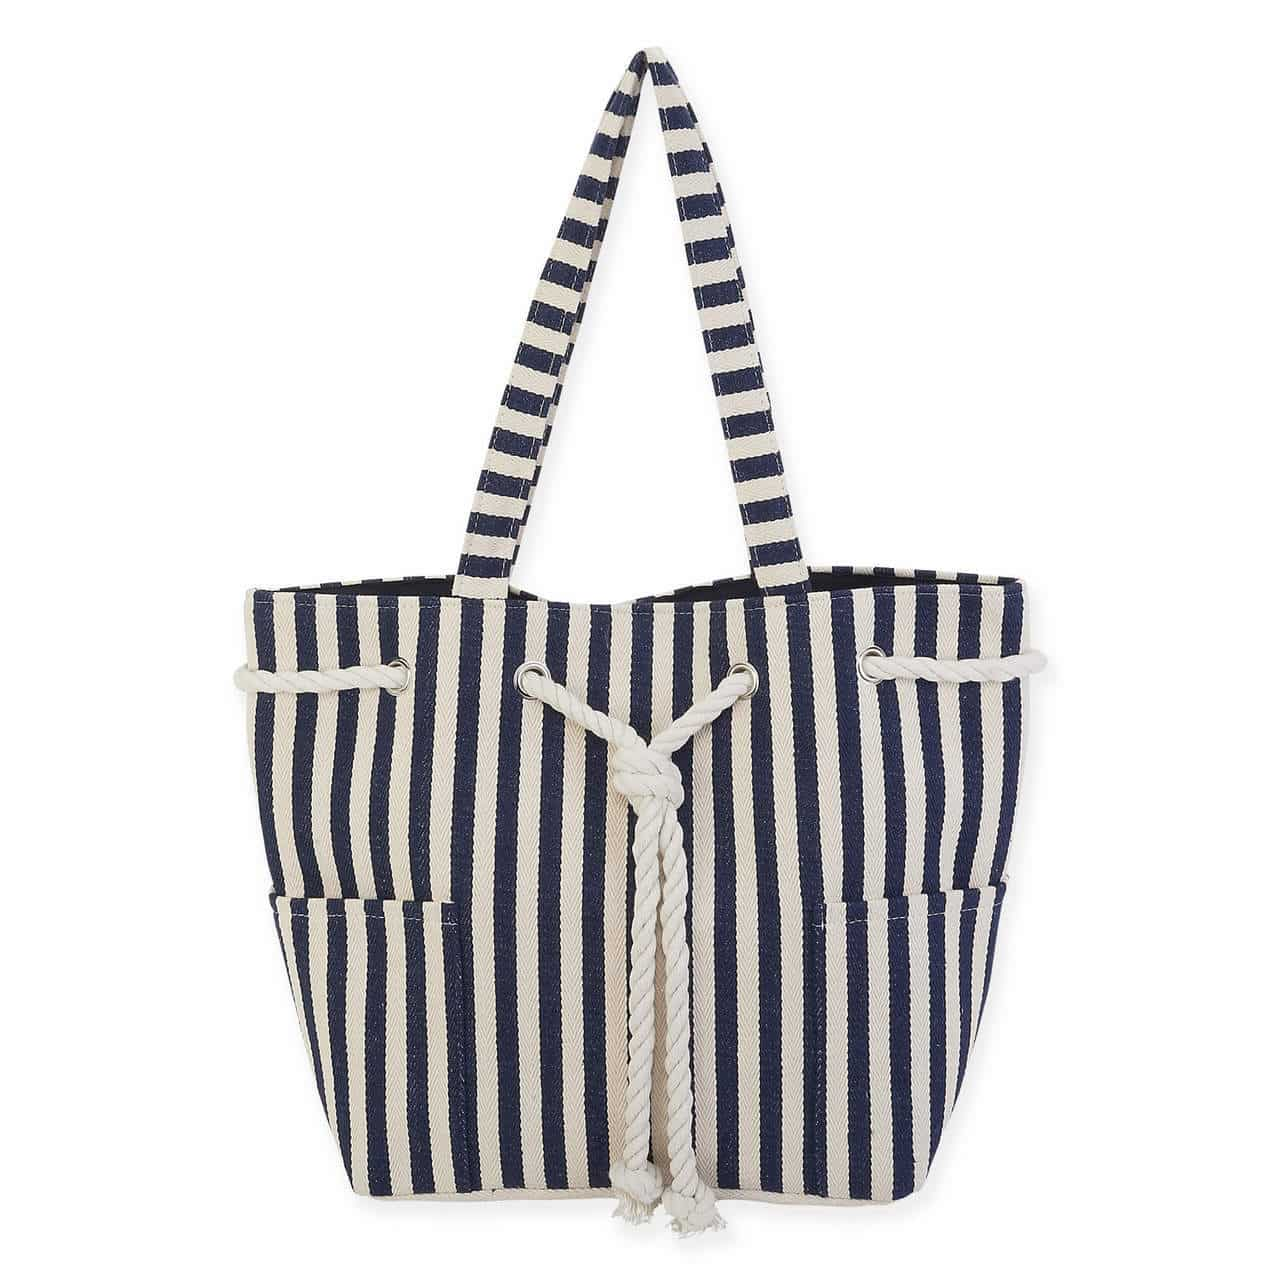 Vertical Stripe Canvas Shoulder Tote by Sun N Sand - Navy